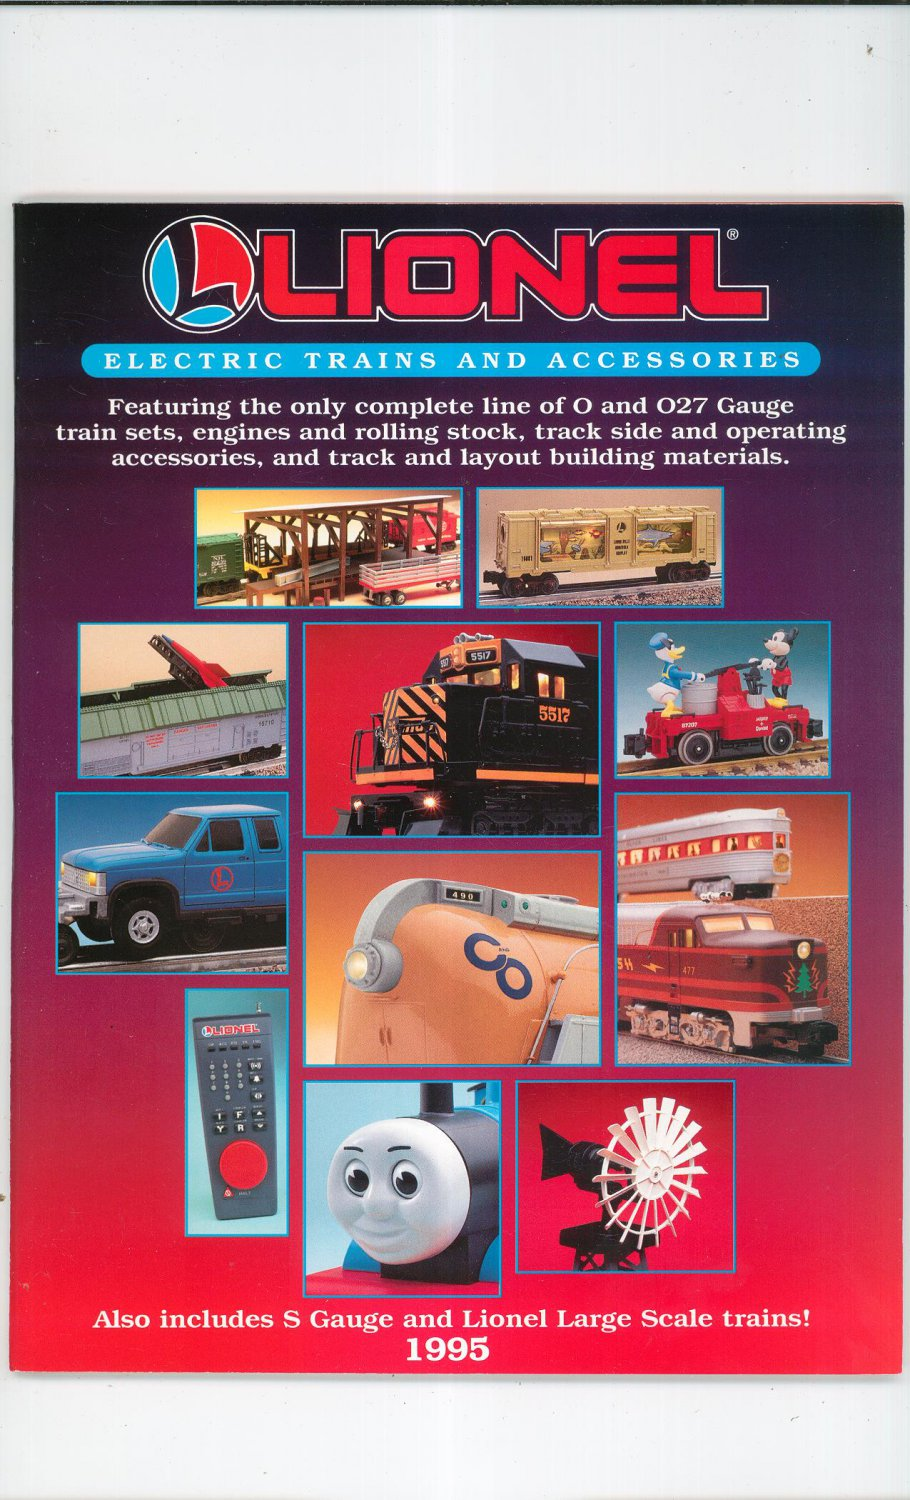 Lionel Electric Trains And Accessories Catalog 1995 Not PDF Free Shipping Offer